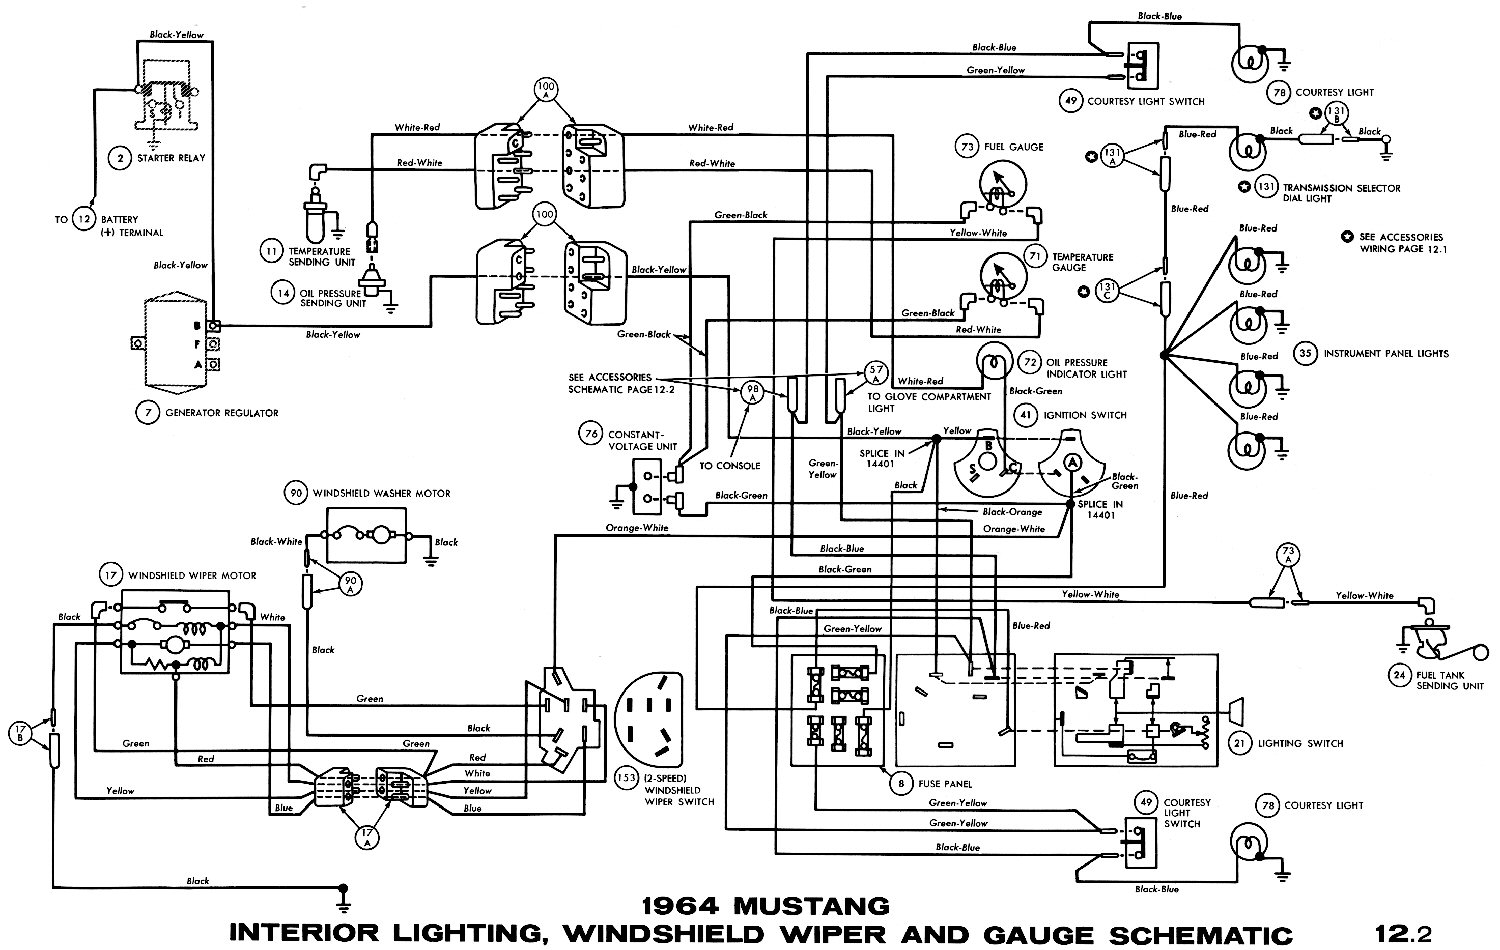 1964 ford mustang headlight wiring diagram schematics wiring rh seniorlivinguniversity co